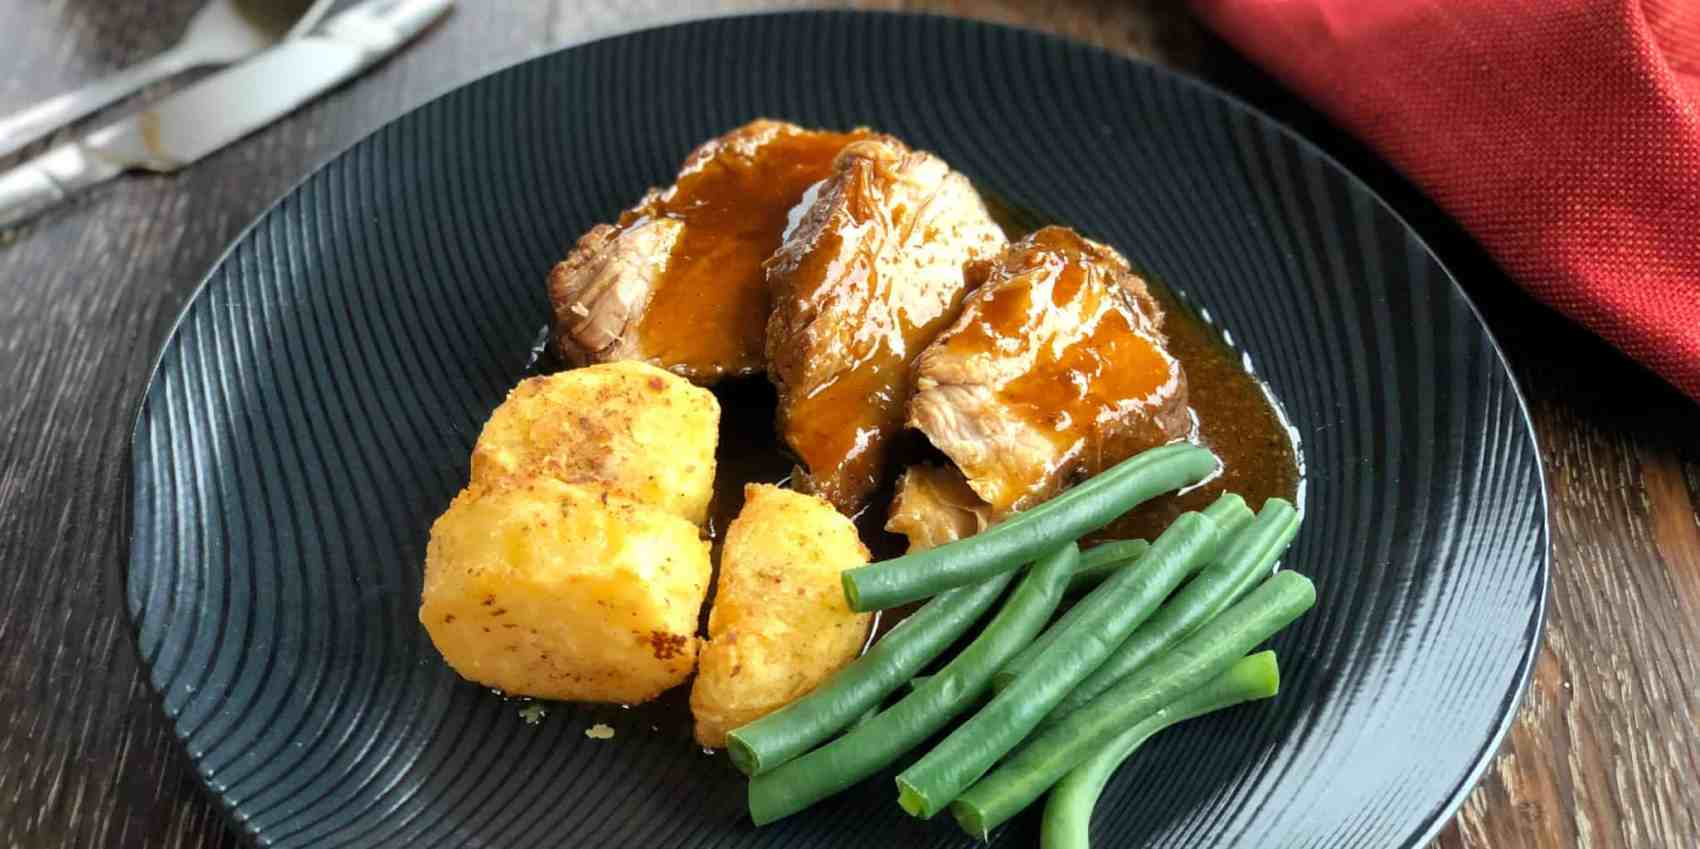 Delicious Perfect Roast Potatoes Served with Roast Pork